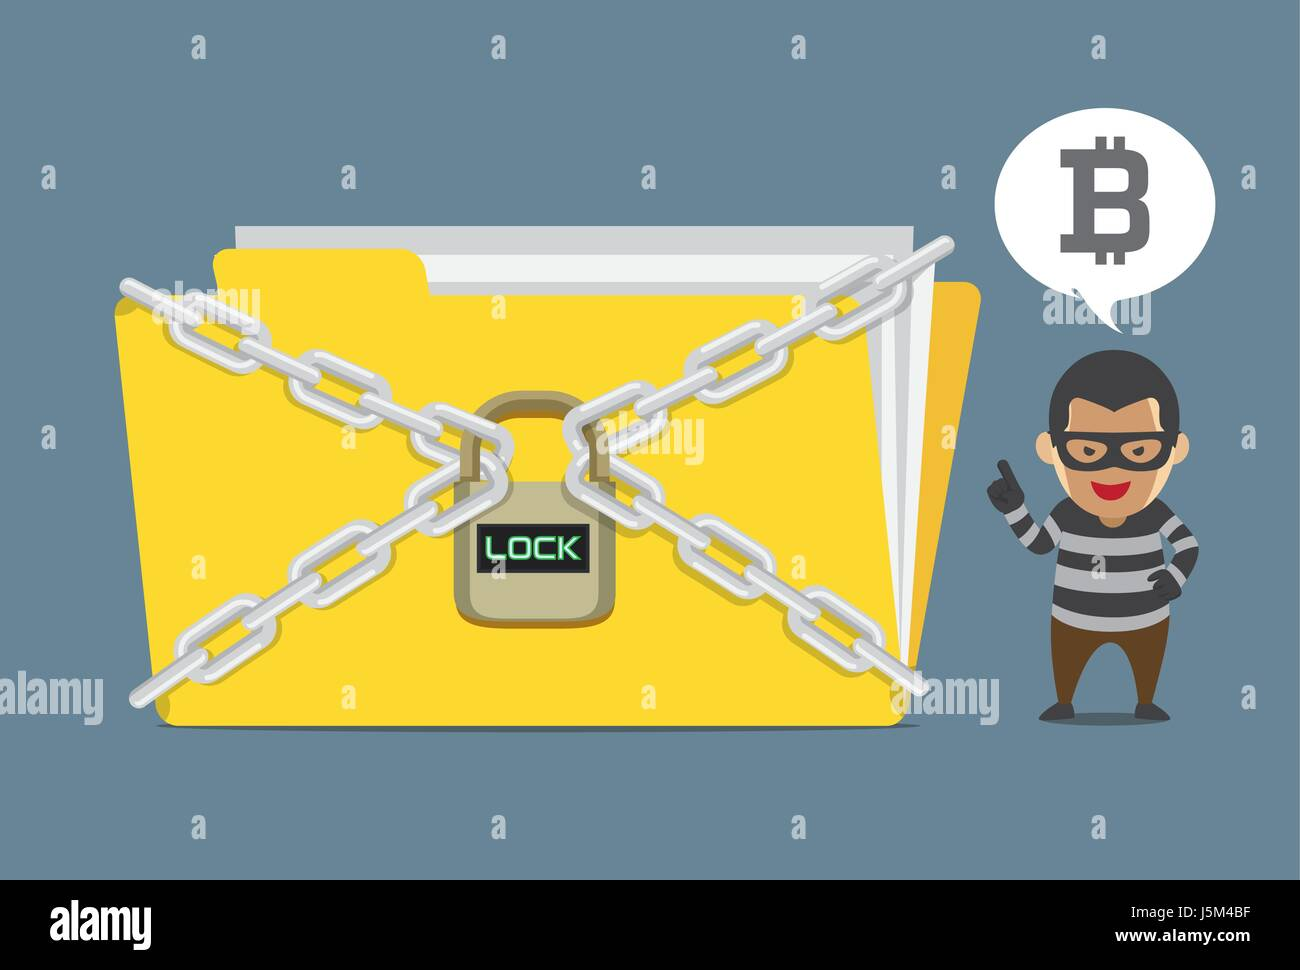 Hacker Lock A Data File And Demand Bitcoin Payment For Unlock Code Stock Vector Image Art Alamy